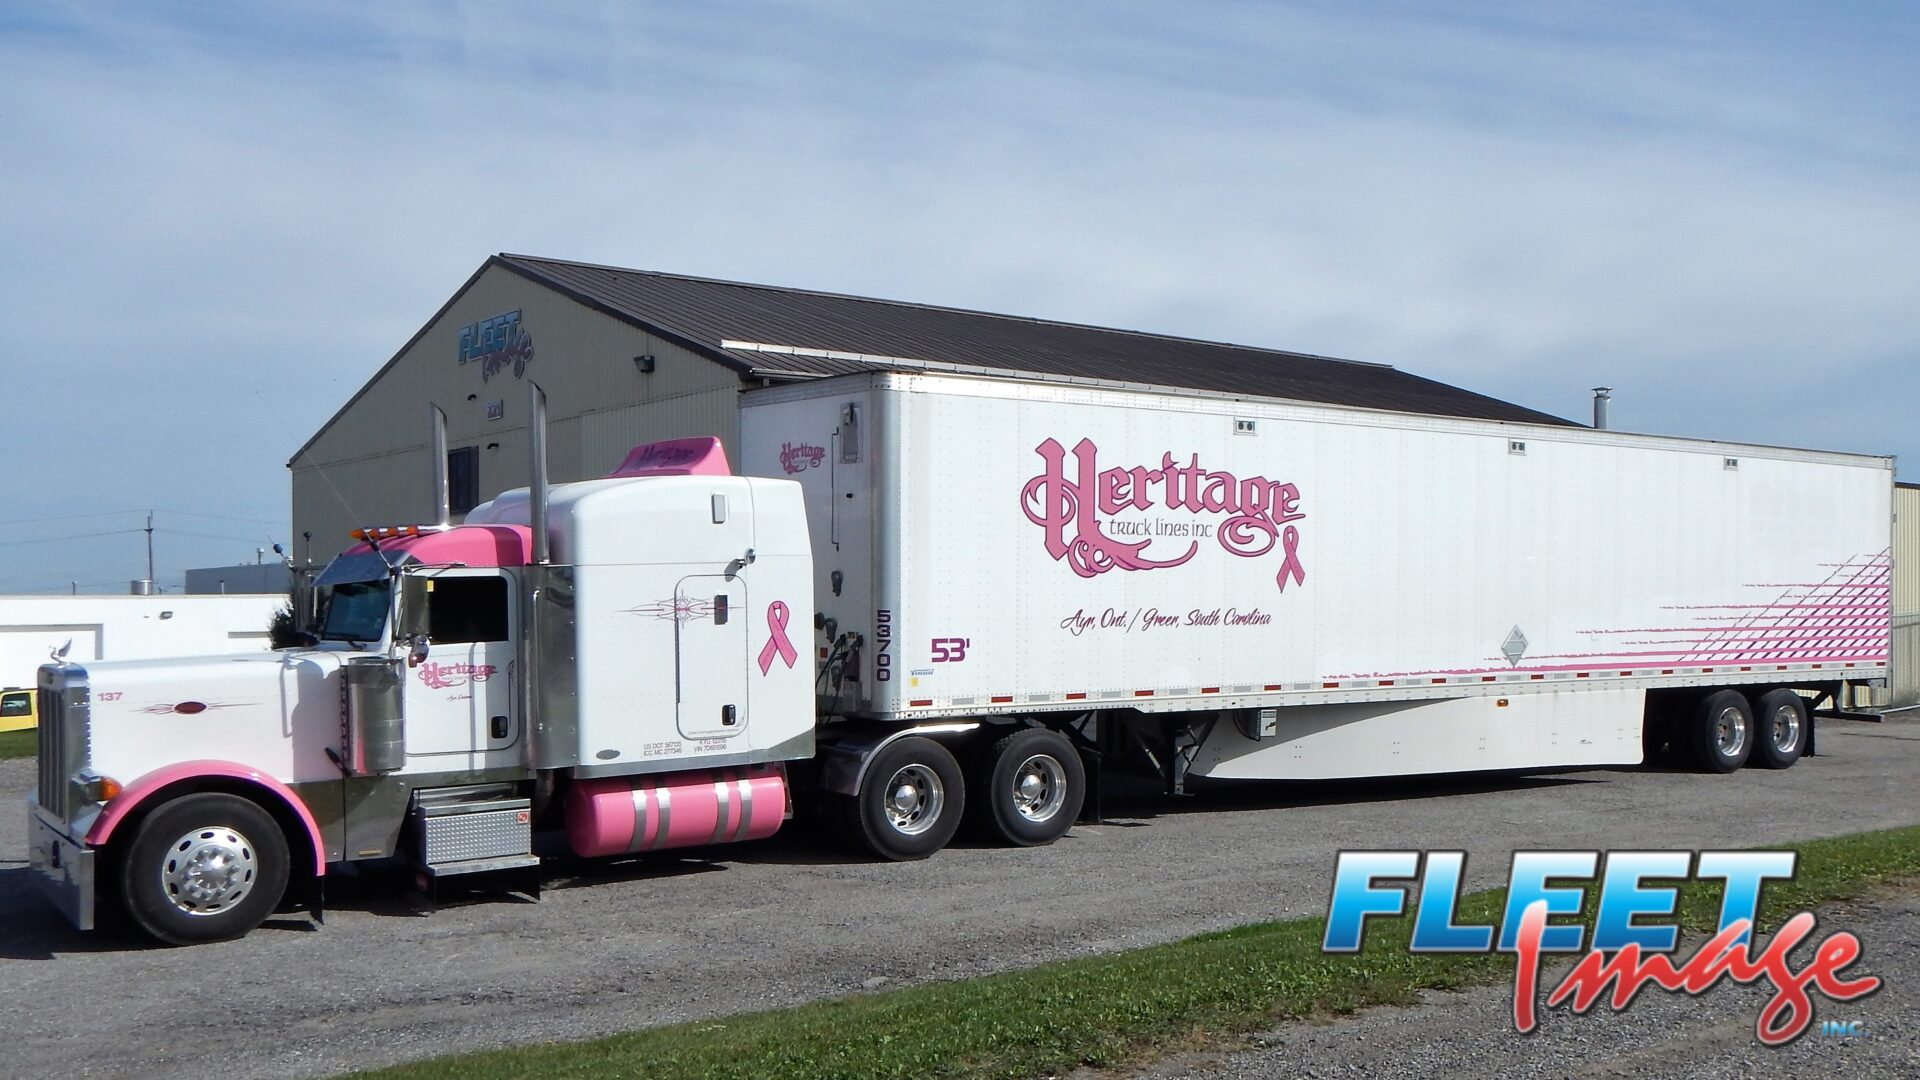 Heritage Truck Lines Inc. white and pink truck